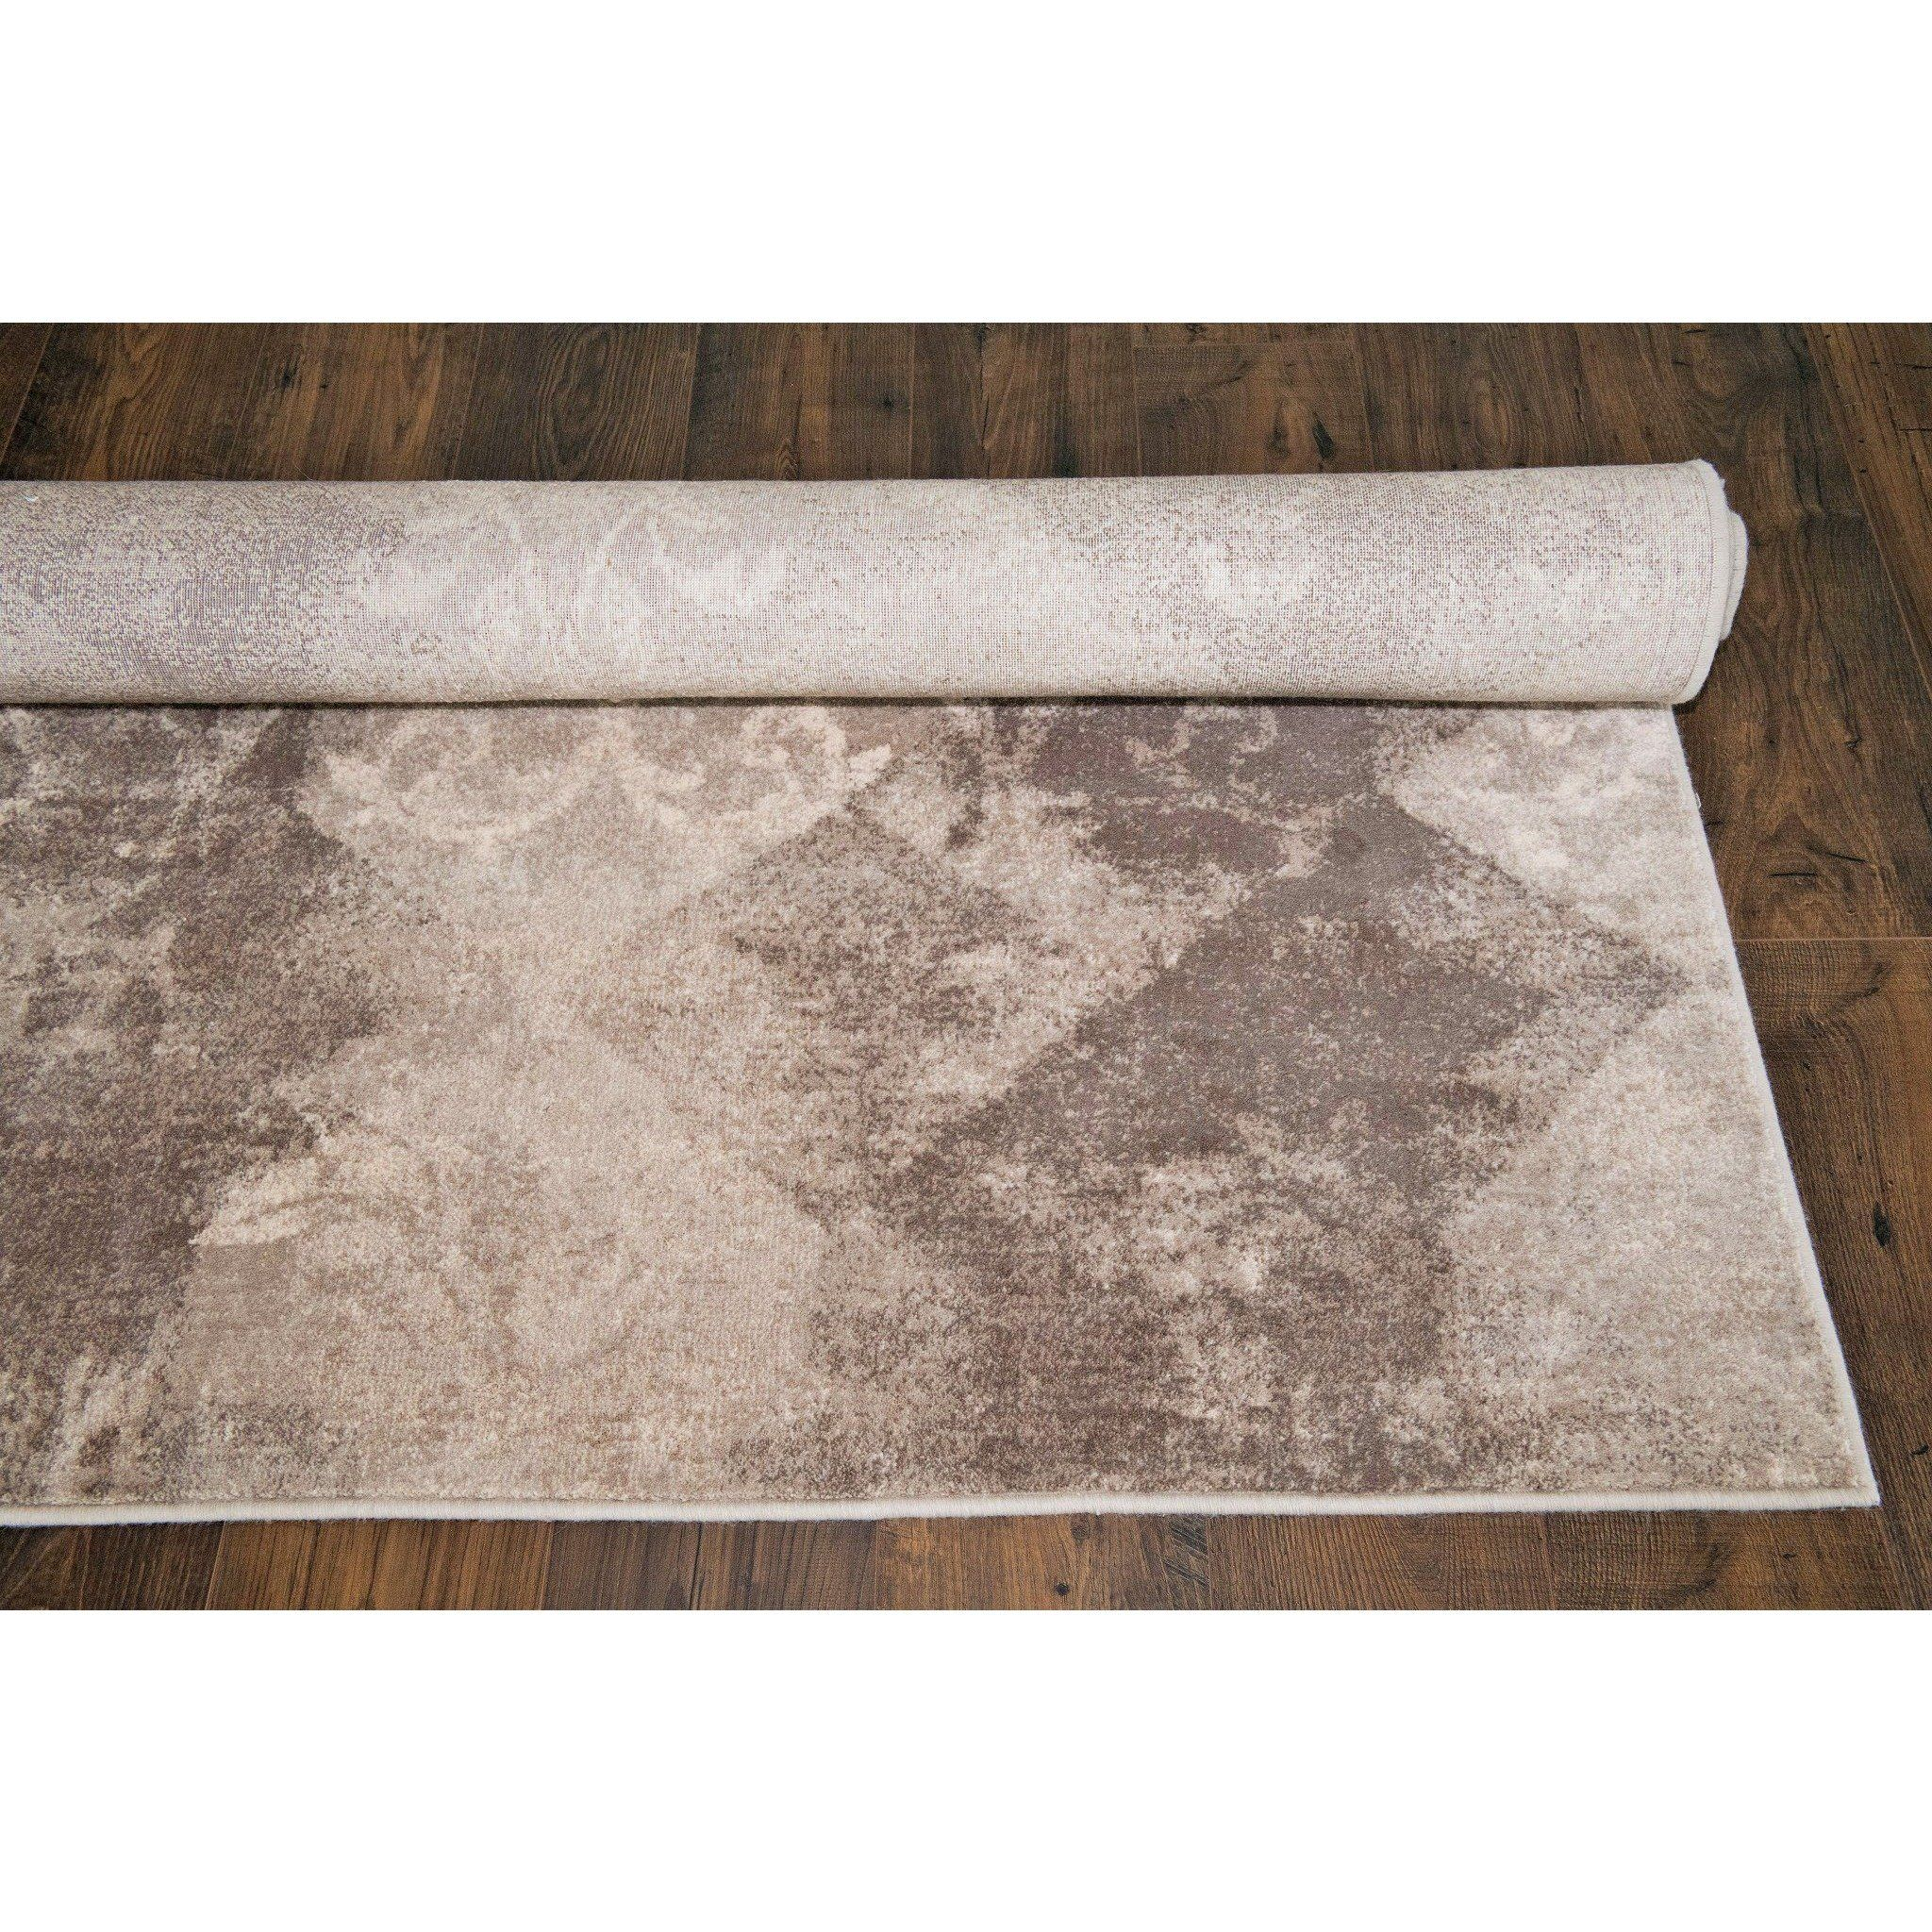 Details About Modern Rug Contemporary Area Rugs Large Wool 5x8 Vintage Room Carpets Soft Sizes